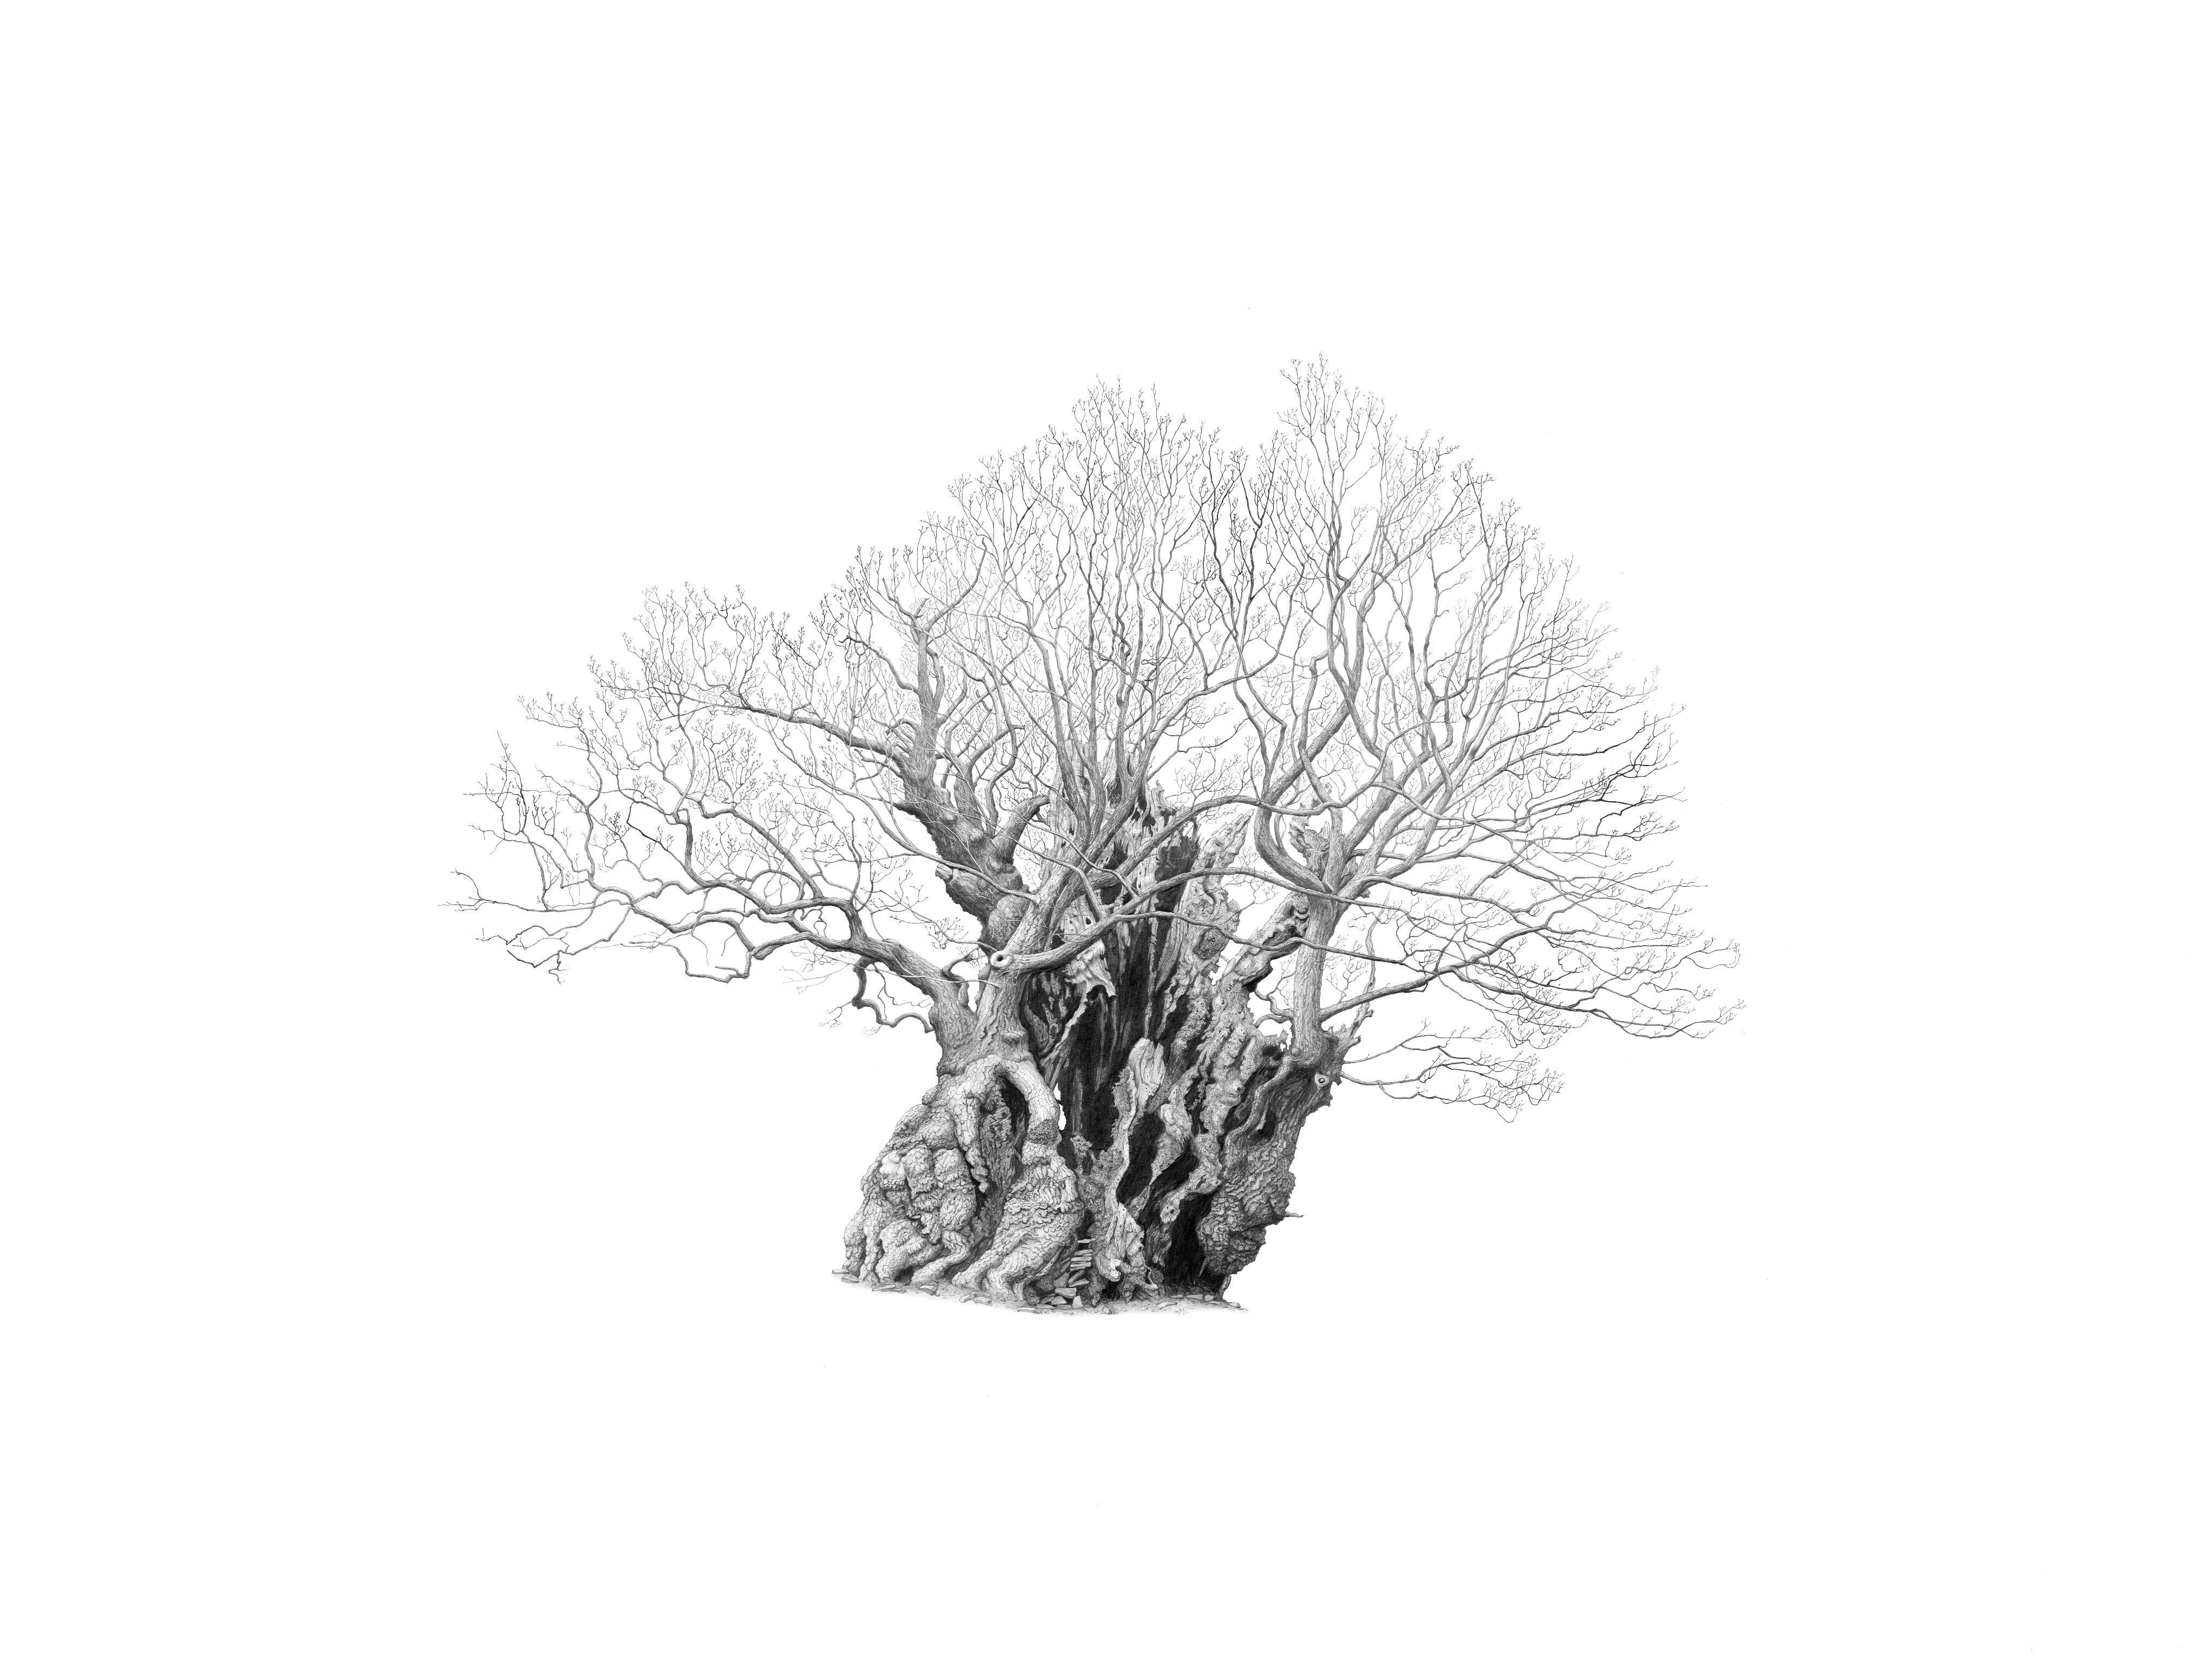 Drawing of Pontfadog Oak in Powys by artist Mark Frith